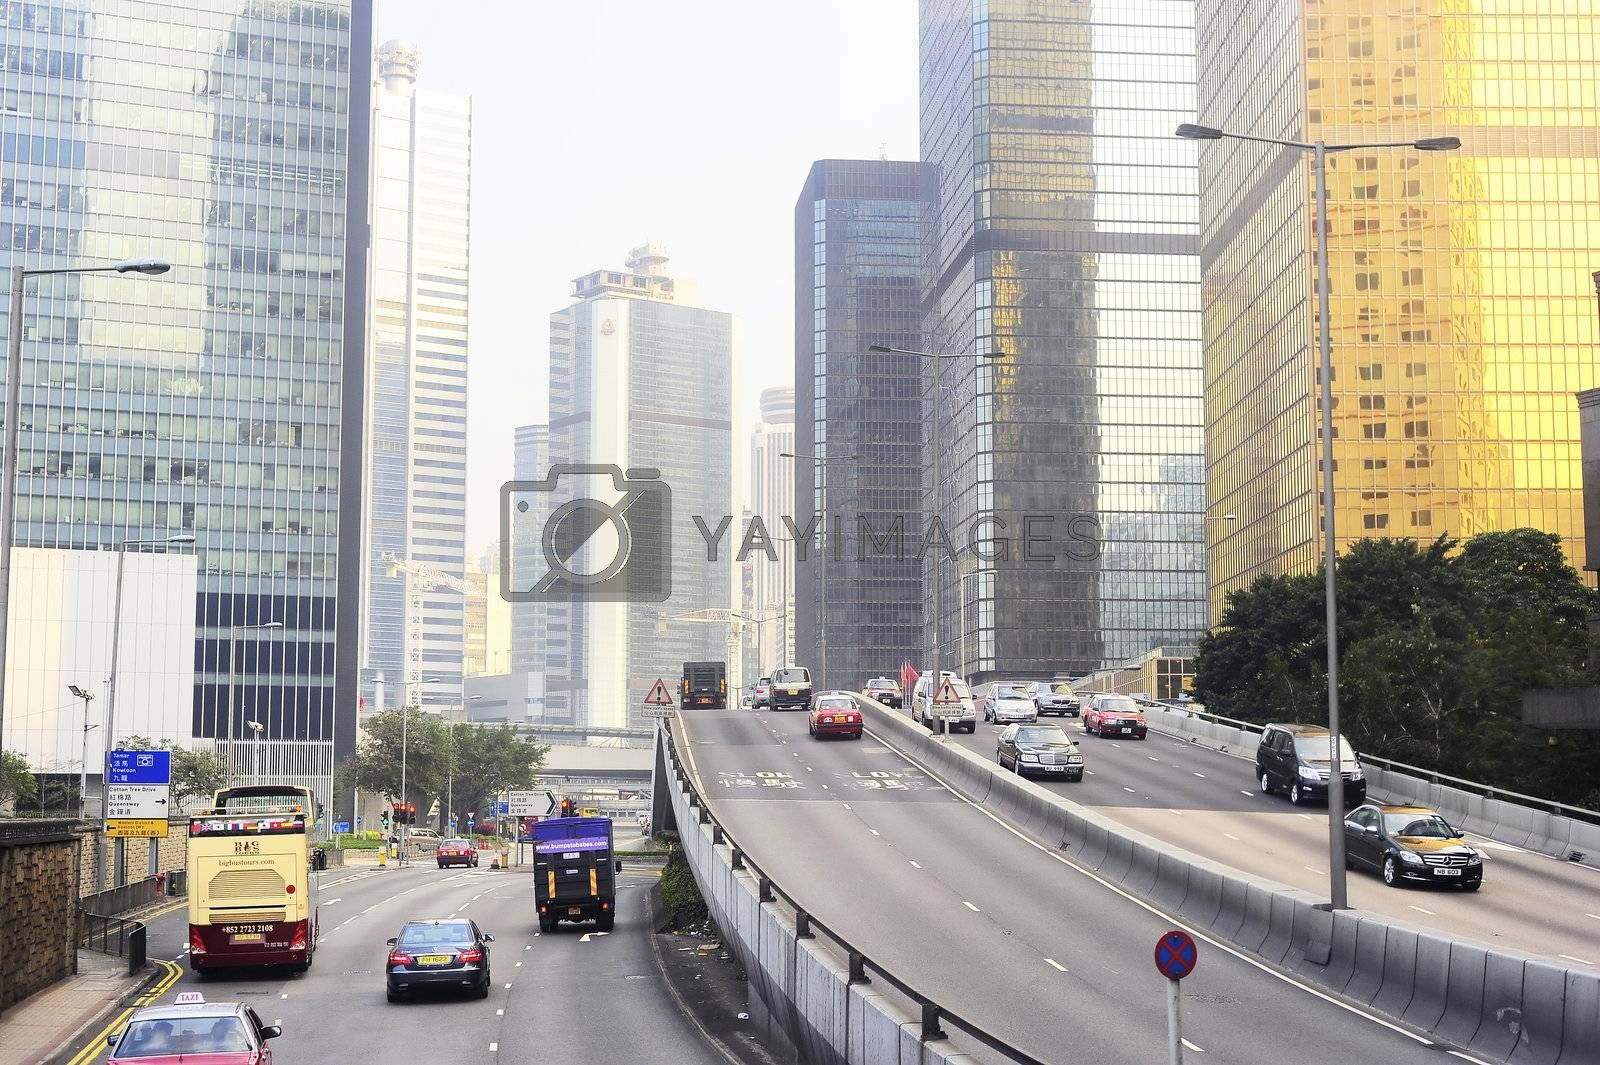 Hong Kong -  January 17, 2013: Many cars on the road at financial center of Hong Kong. Hong Kong is an international financial center, which consists of 112 buildings,standing higher than 180 meters